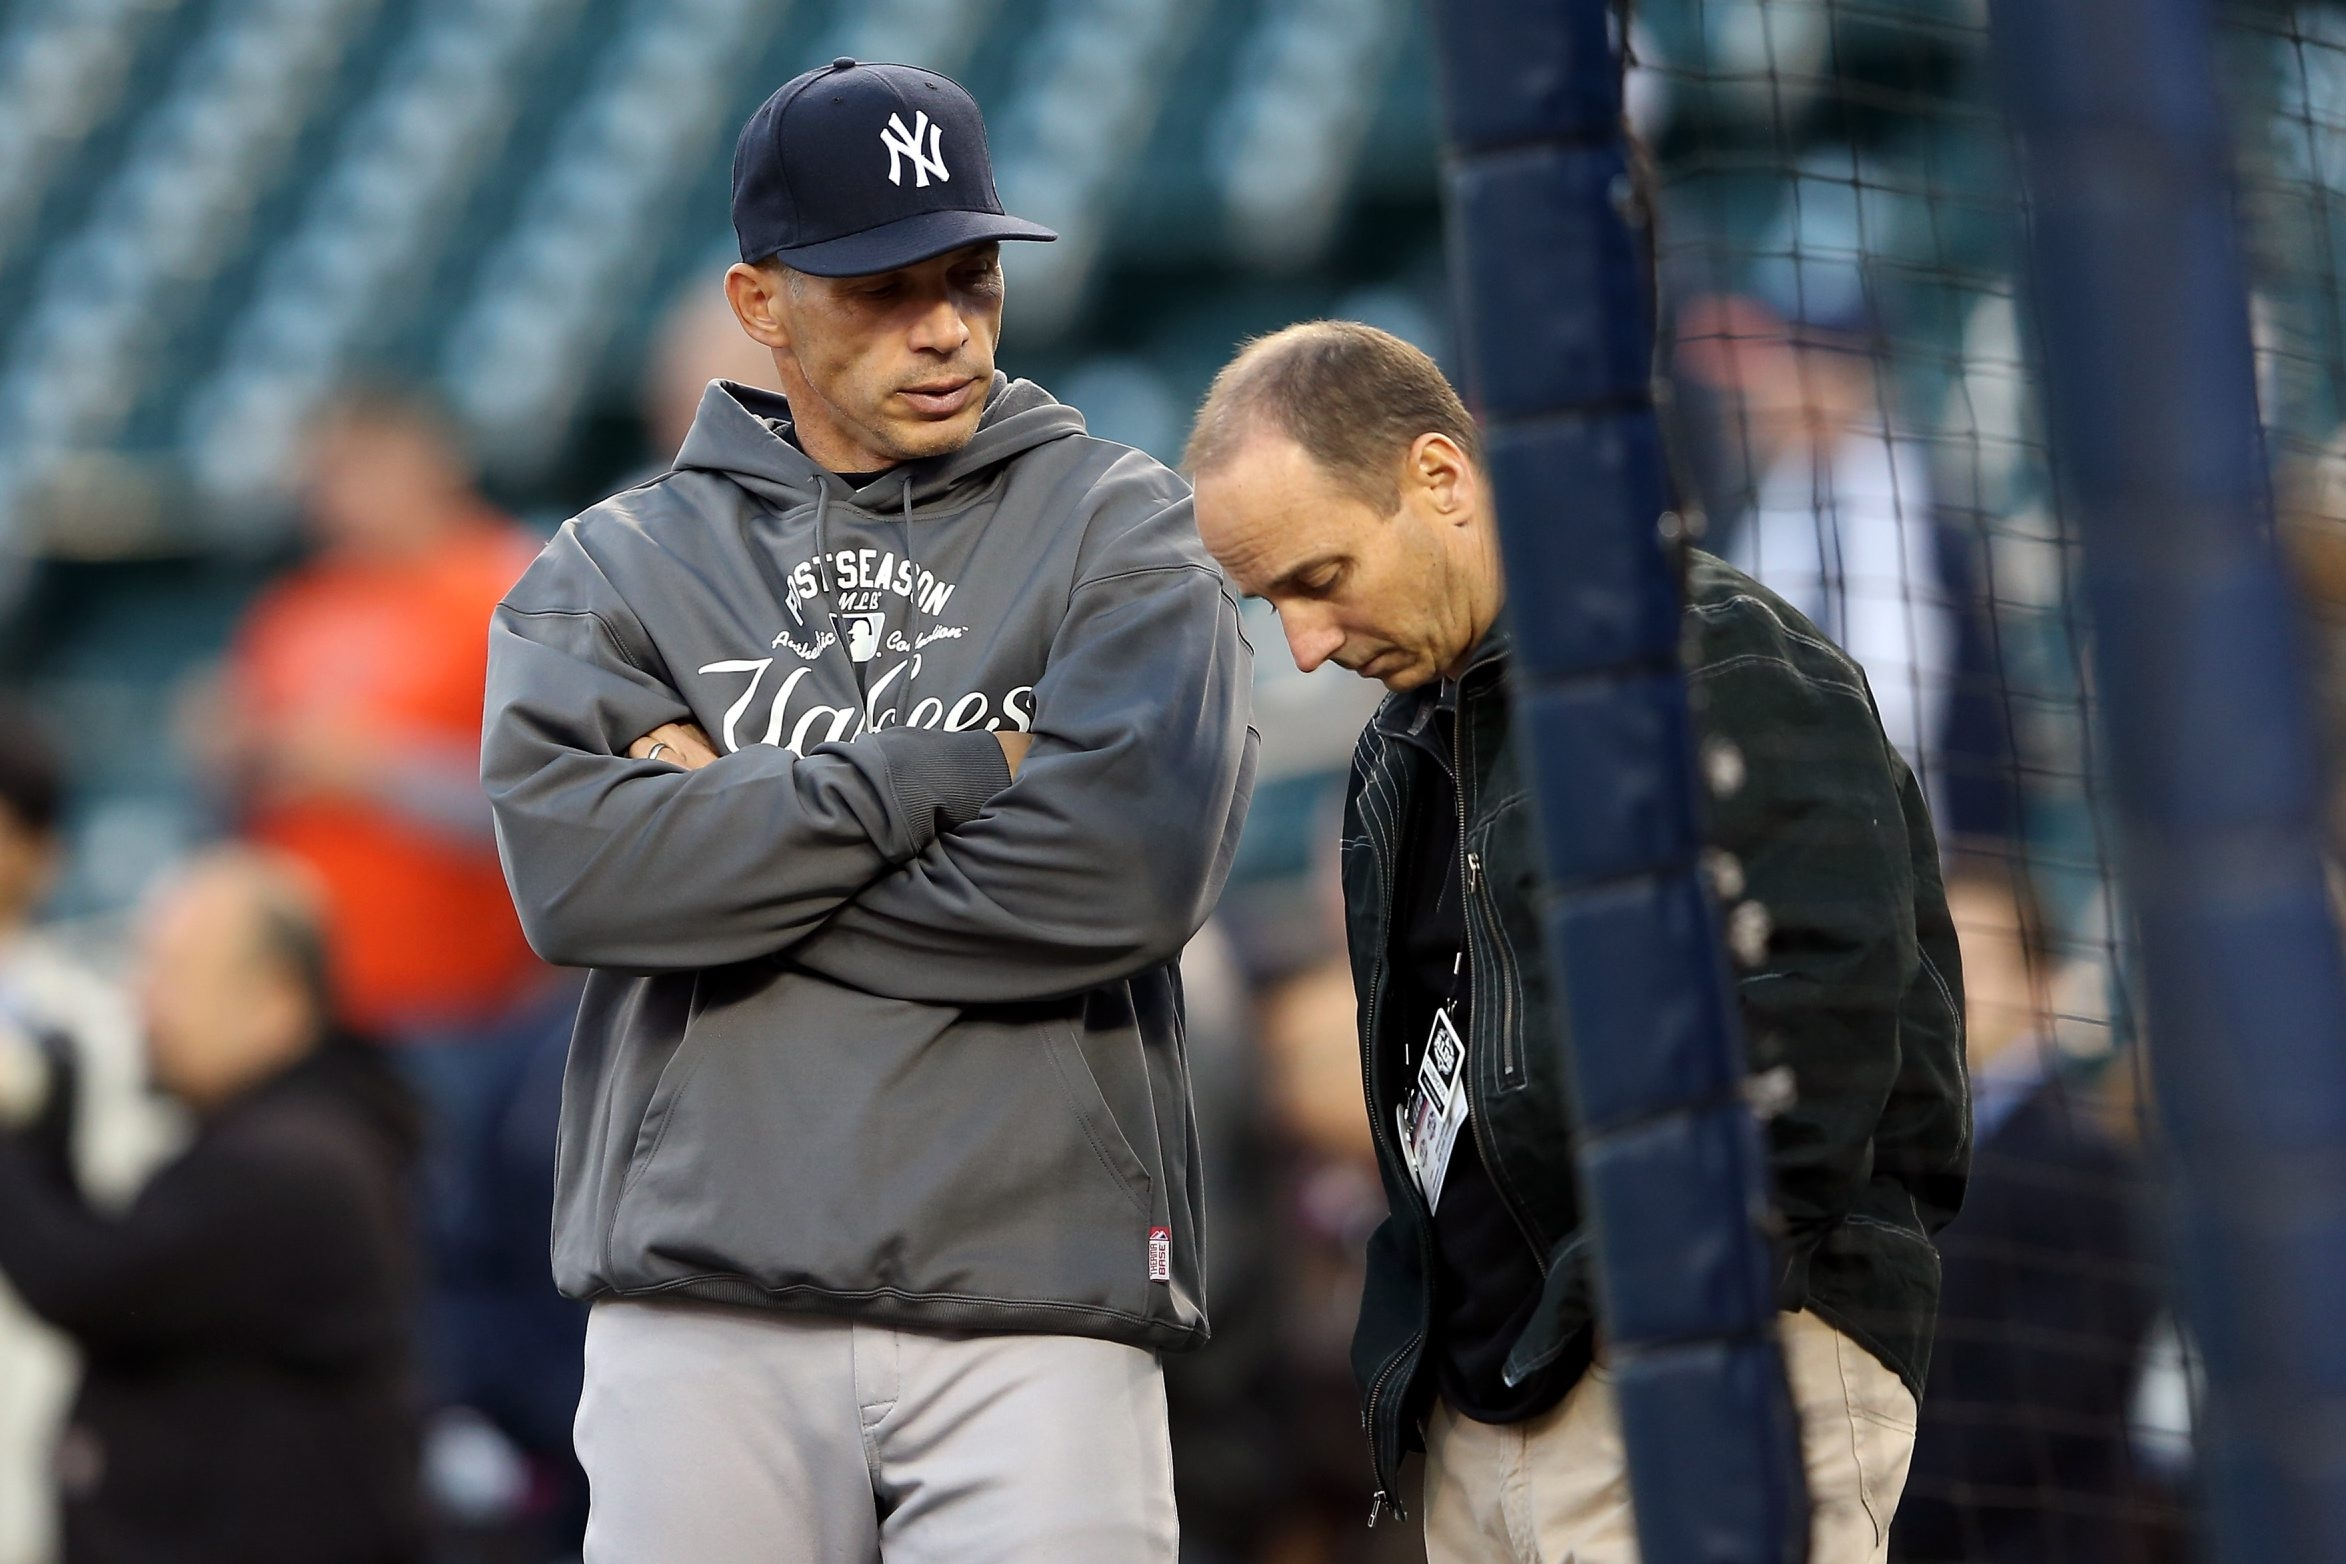 Yankees general manager Brian Cashman (right), pictured with manager Joe Girardi, recently had some choice words for Alex Rodriguez.